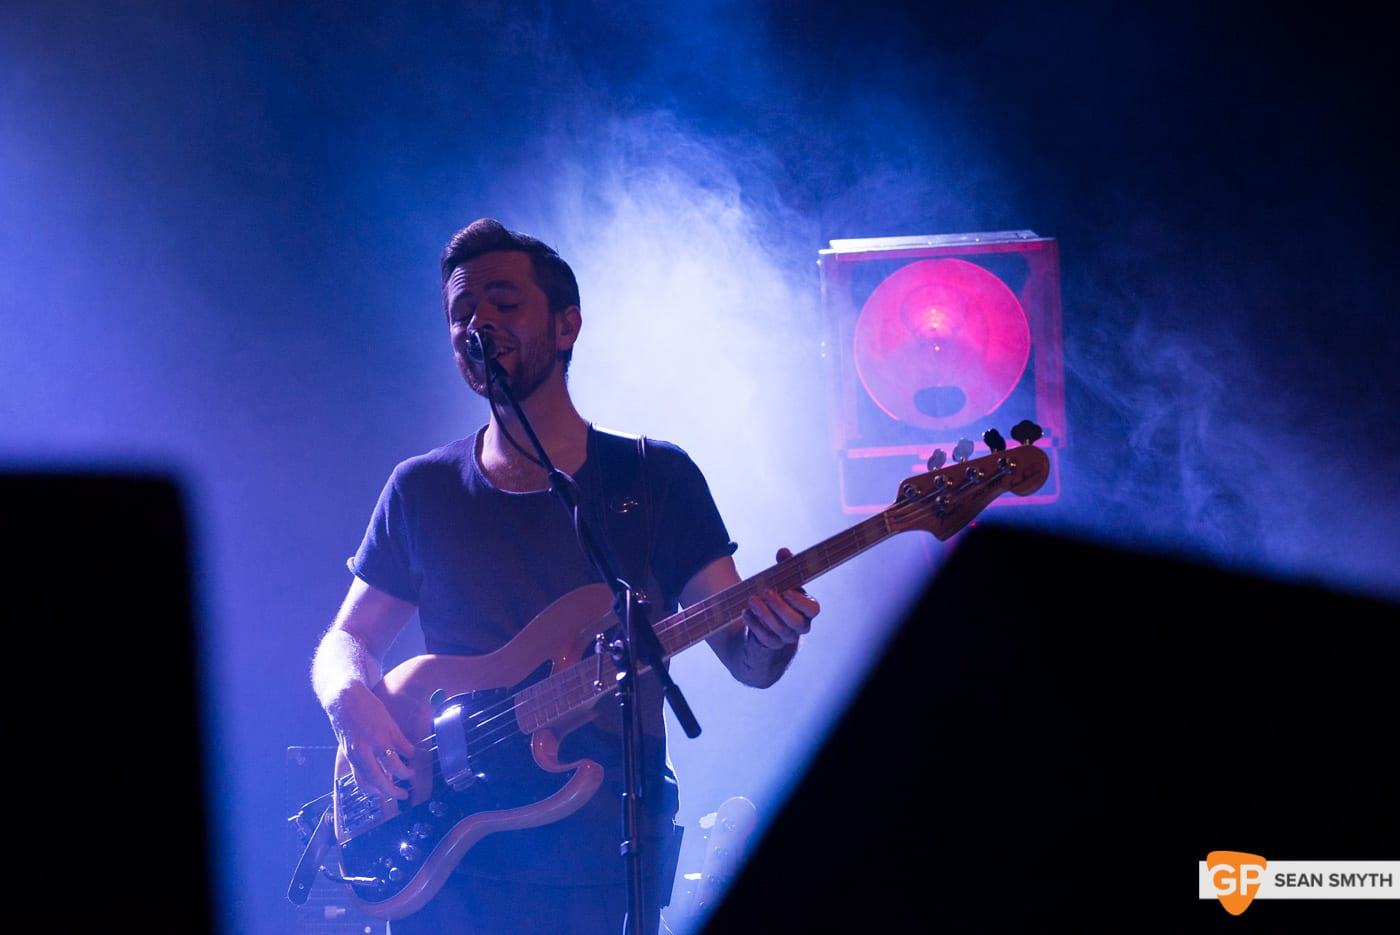 hudson-taylor-at-the-olympia-theatre-26-2-15-by-sean-smyth-24-of-26_16756755775_o